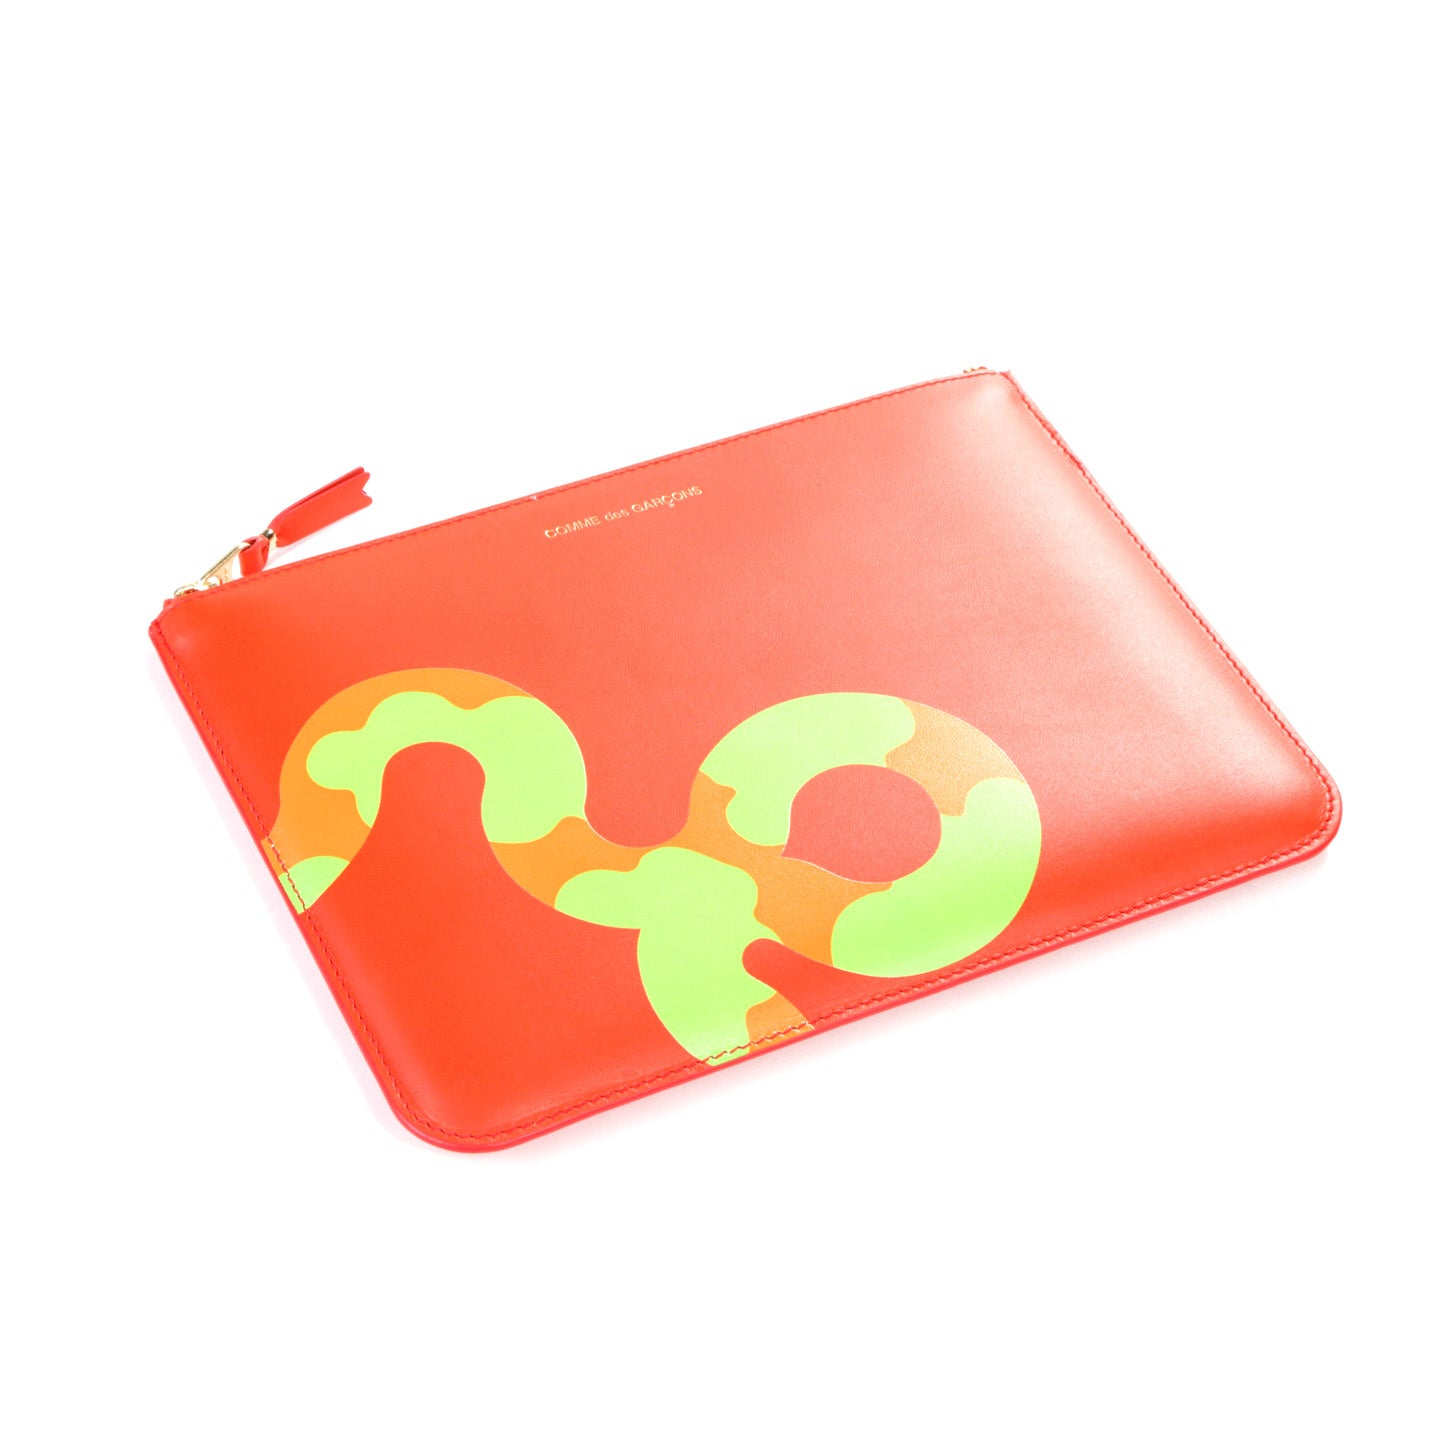 COMME DES GARCONS SA5100 RUBY EYES ZIP WALLET ORANGE